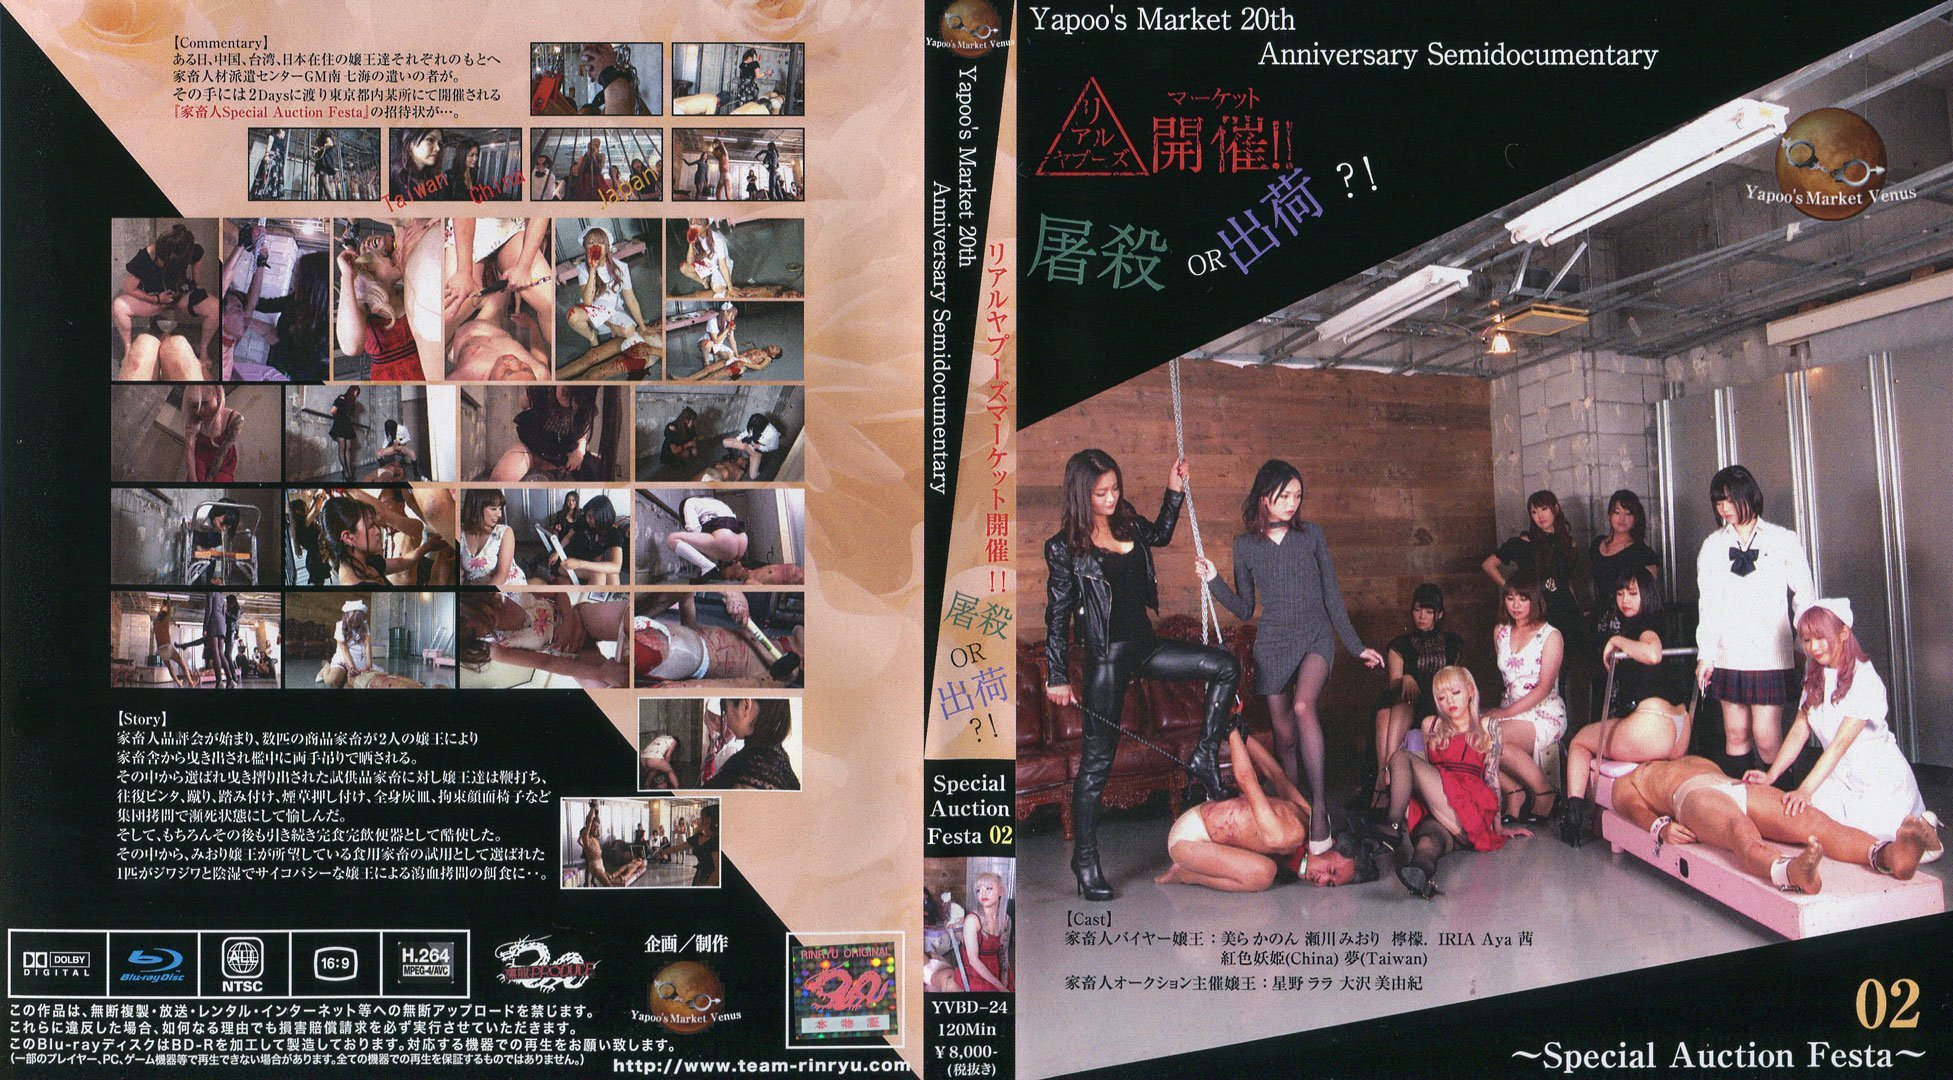 YVBD-24 – Yapoo's Market 20th Anniversary Semidocumentary – BluRay